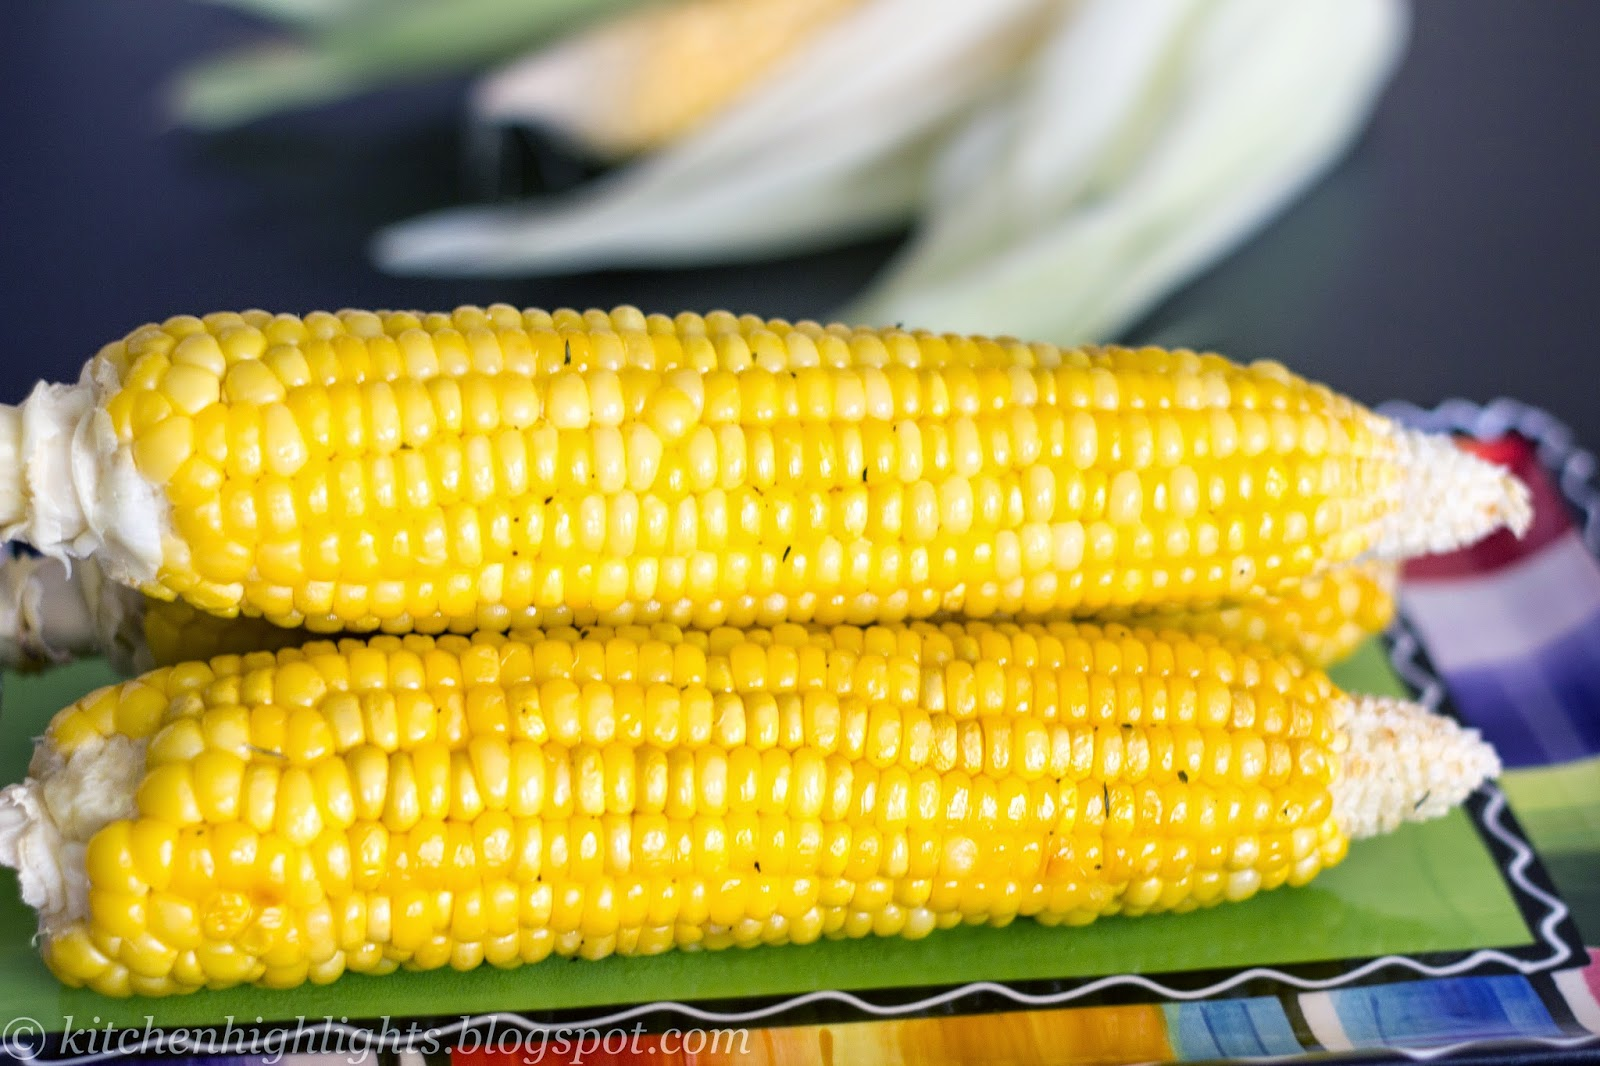 Corn on the cob is a delicious vegetable that can be enjoyed on its own or as a side dish for a variety of meals